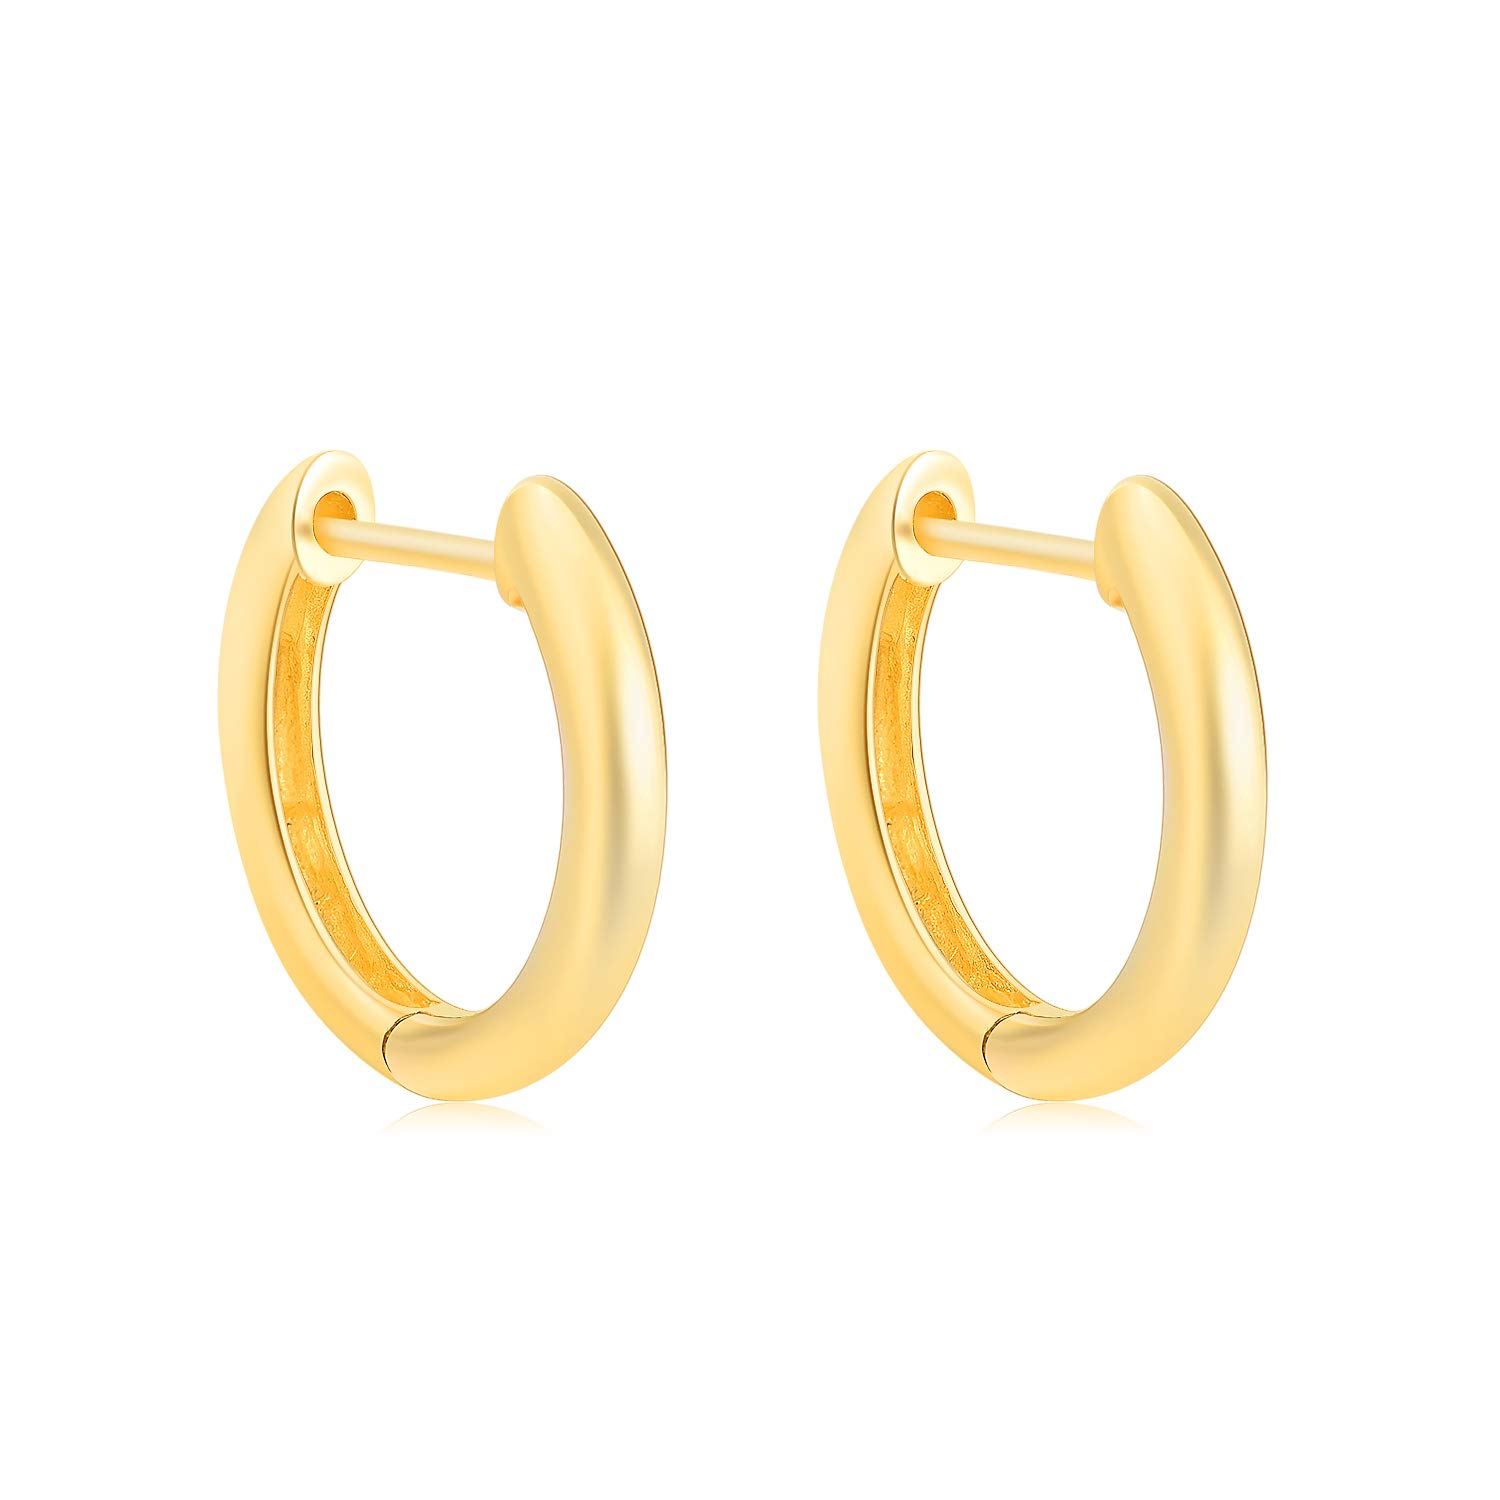 SISGEM Solid 18k Gold Hoop Earrings for Women Real Gold, Small Yellow Gold Huggie Hoops for Girls (Thickness: 1.8 mm)